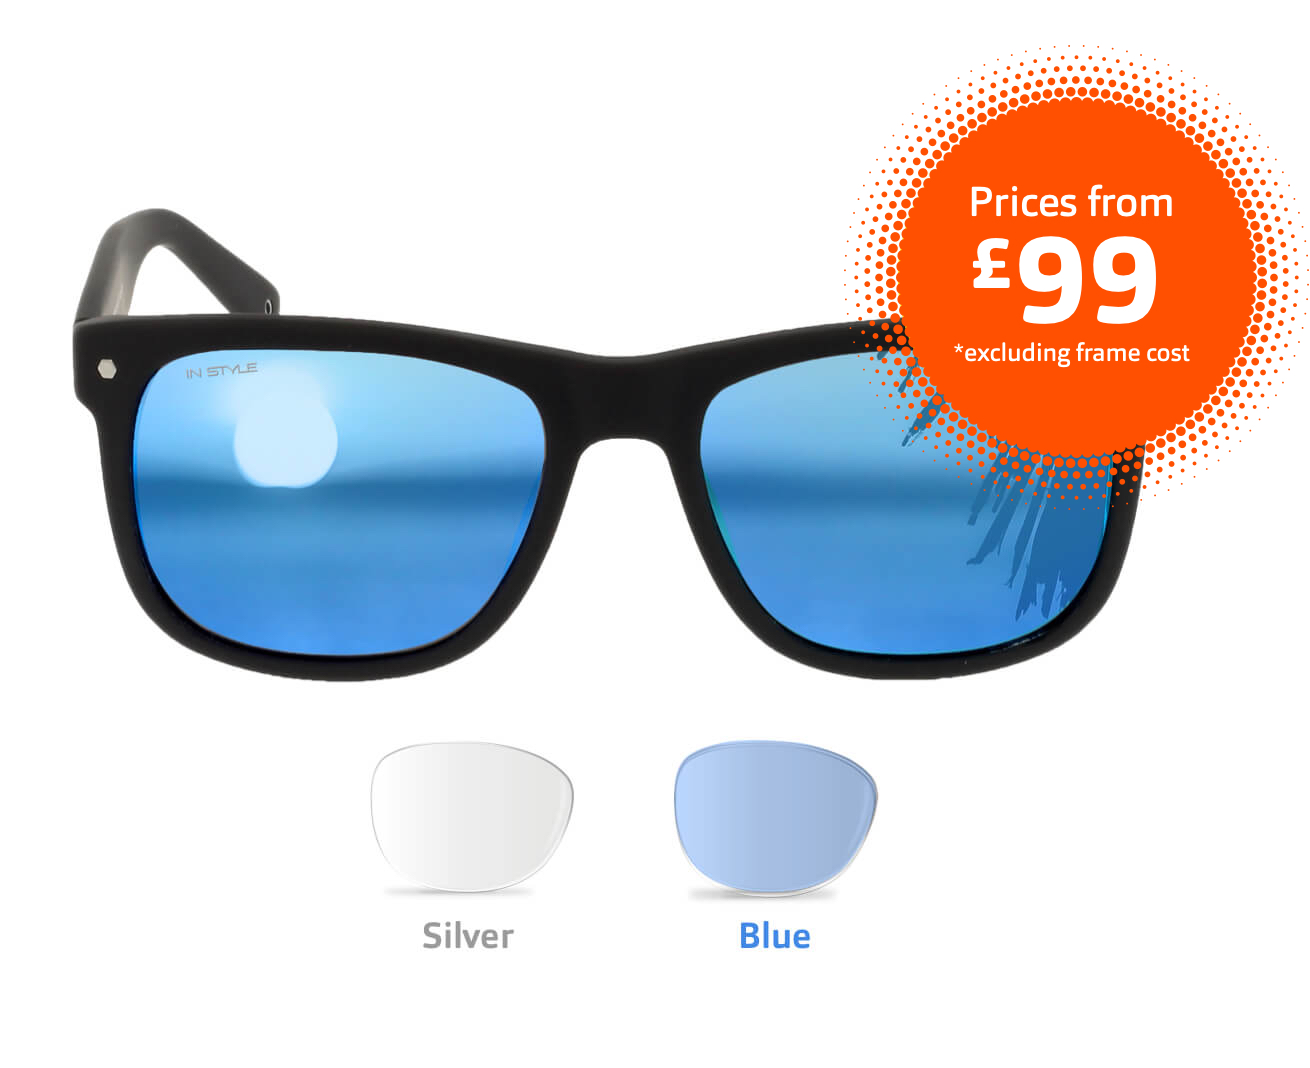 in Style Sunglasses - Black/Blue